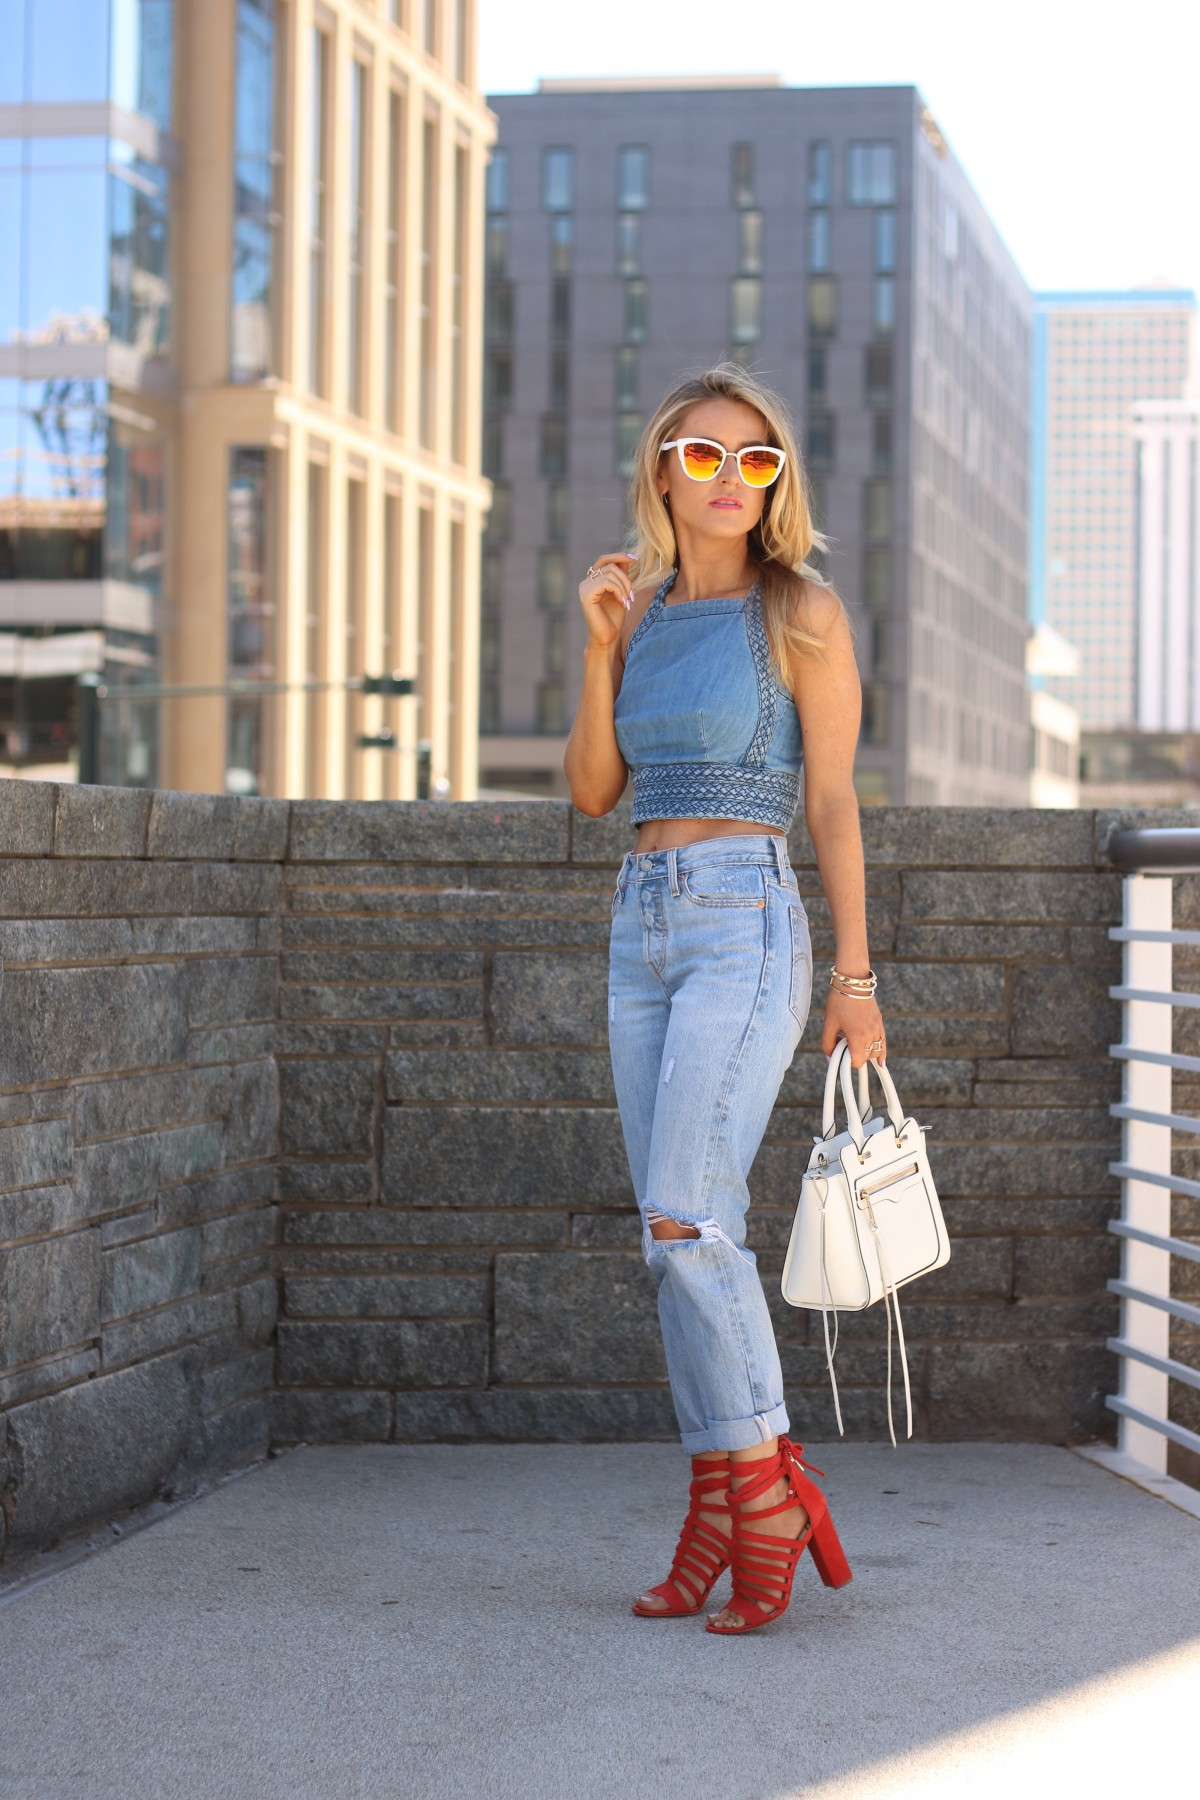 Amber from every once in a style wearing denim jeans | denim crop top